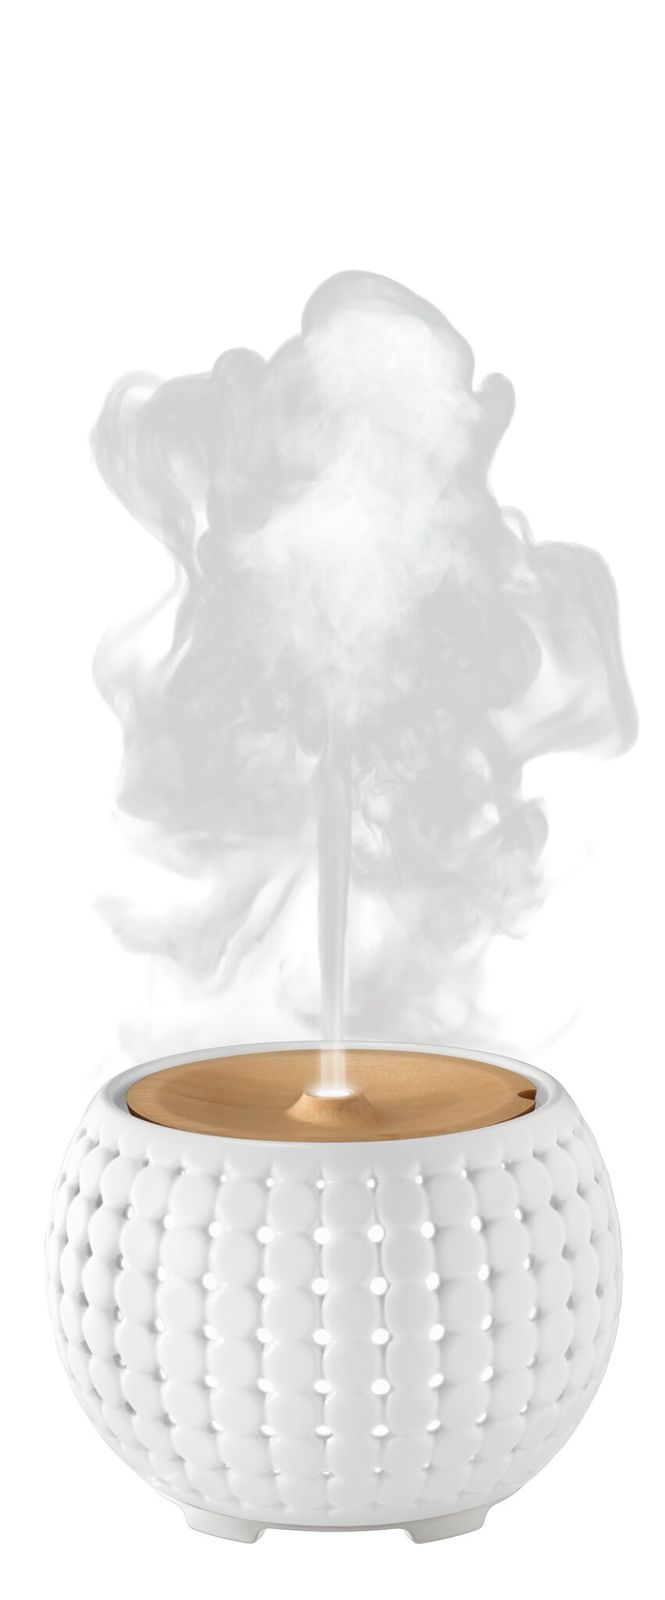 Ellia Gather Aroma Diffuser image